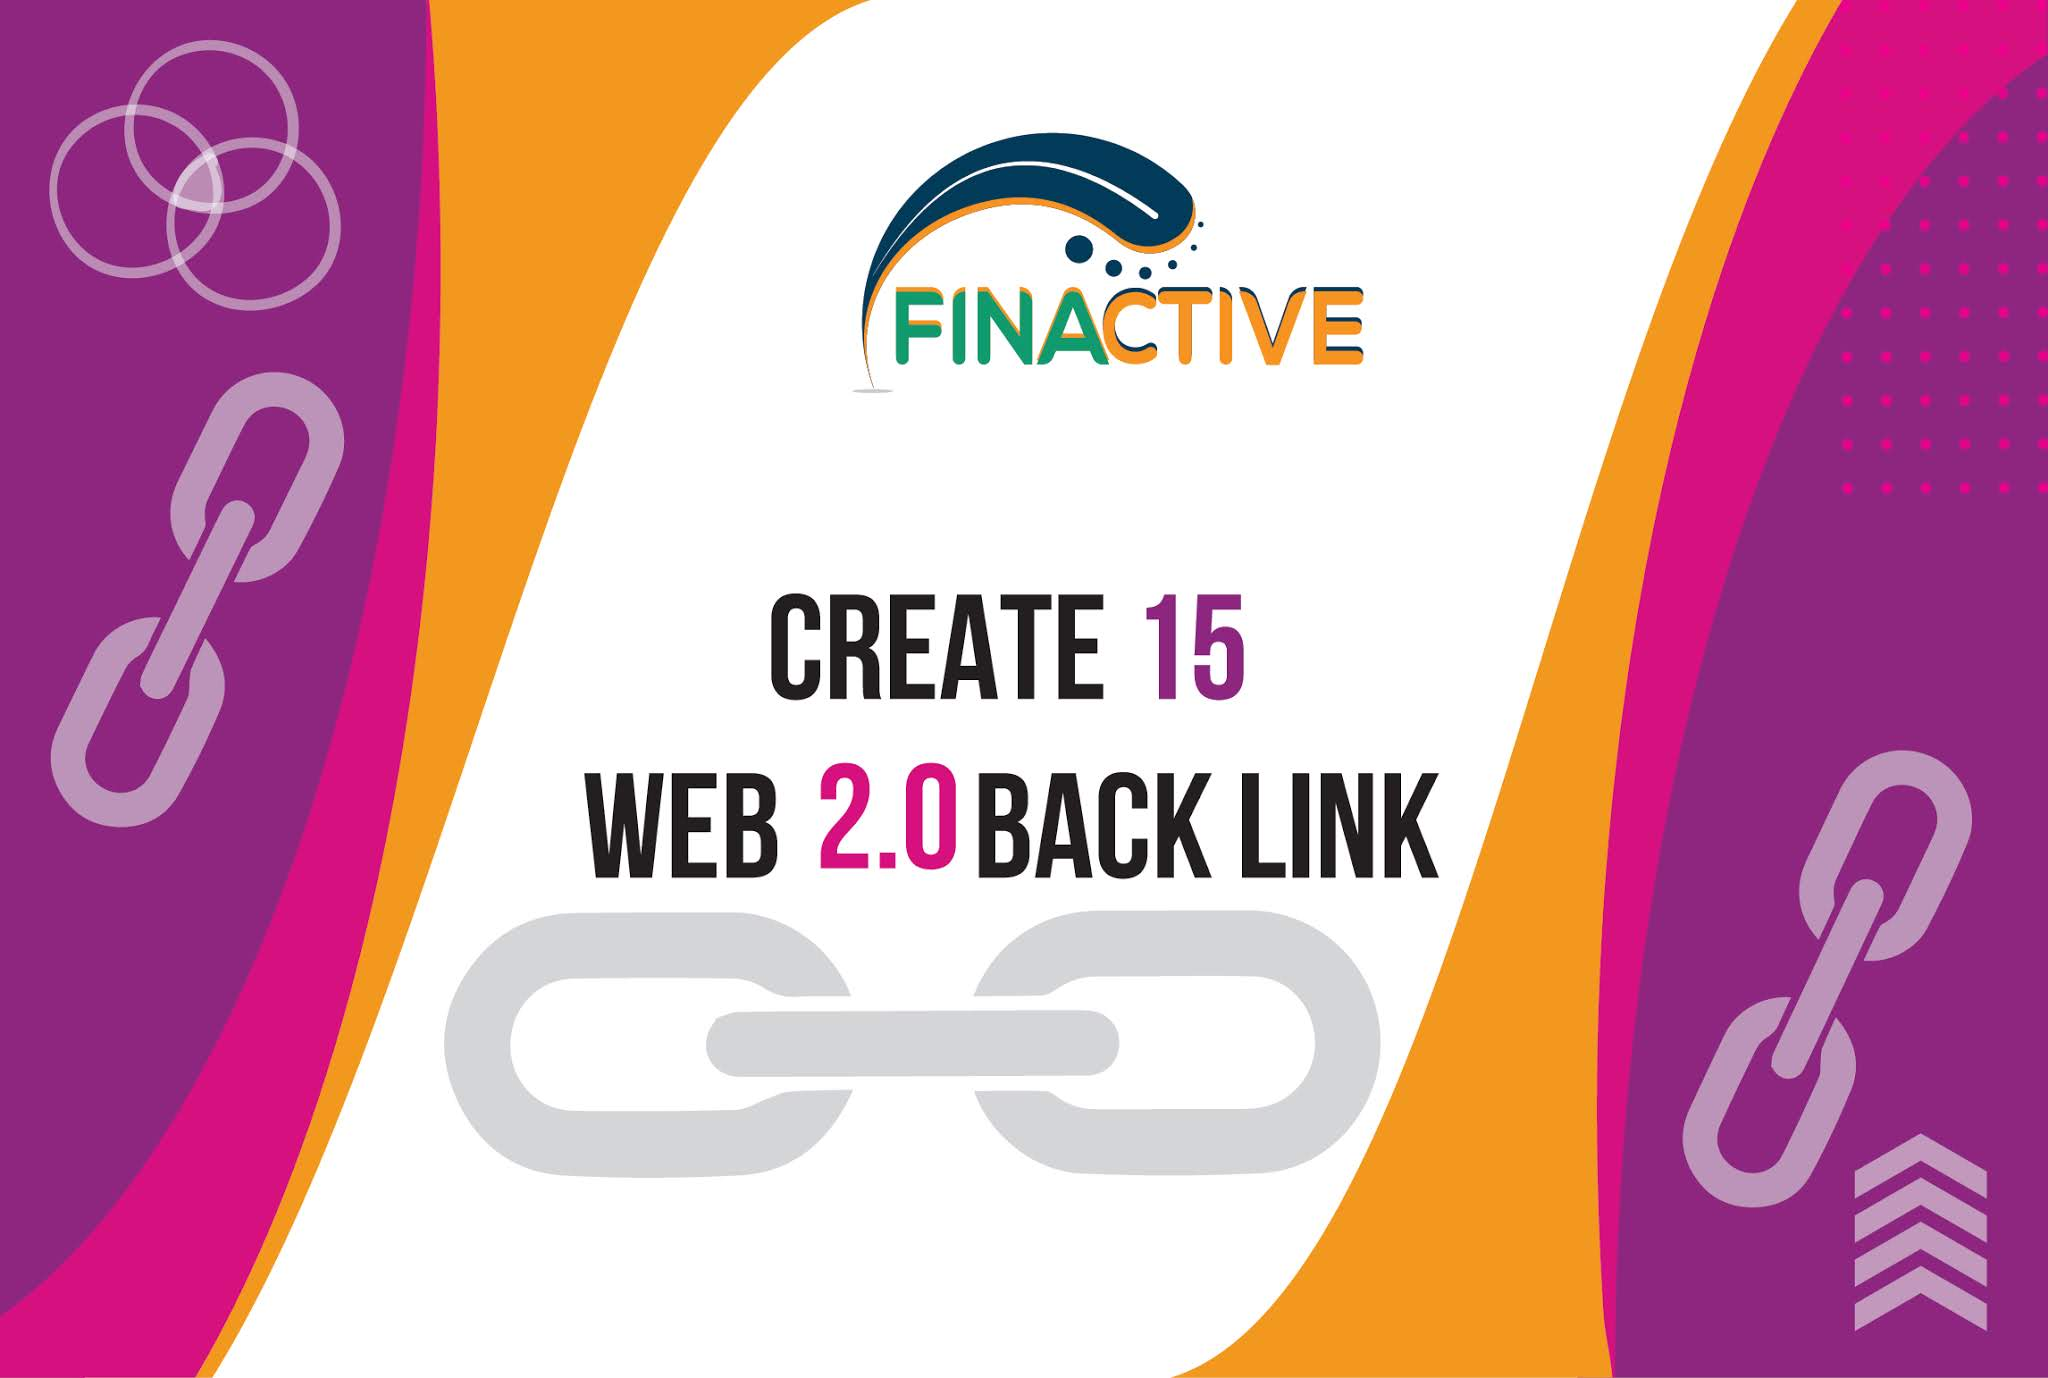 We Will Create 15 Web 2.0 Links For Your Website